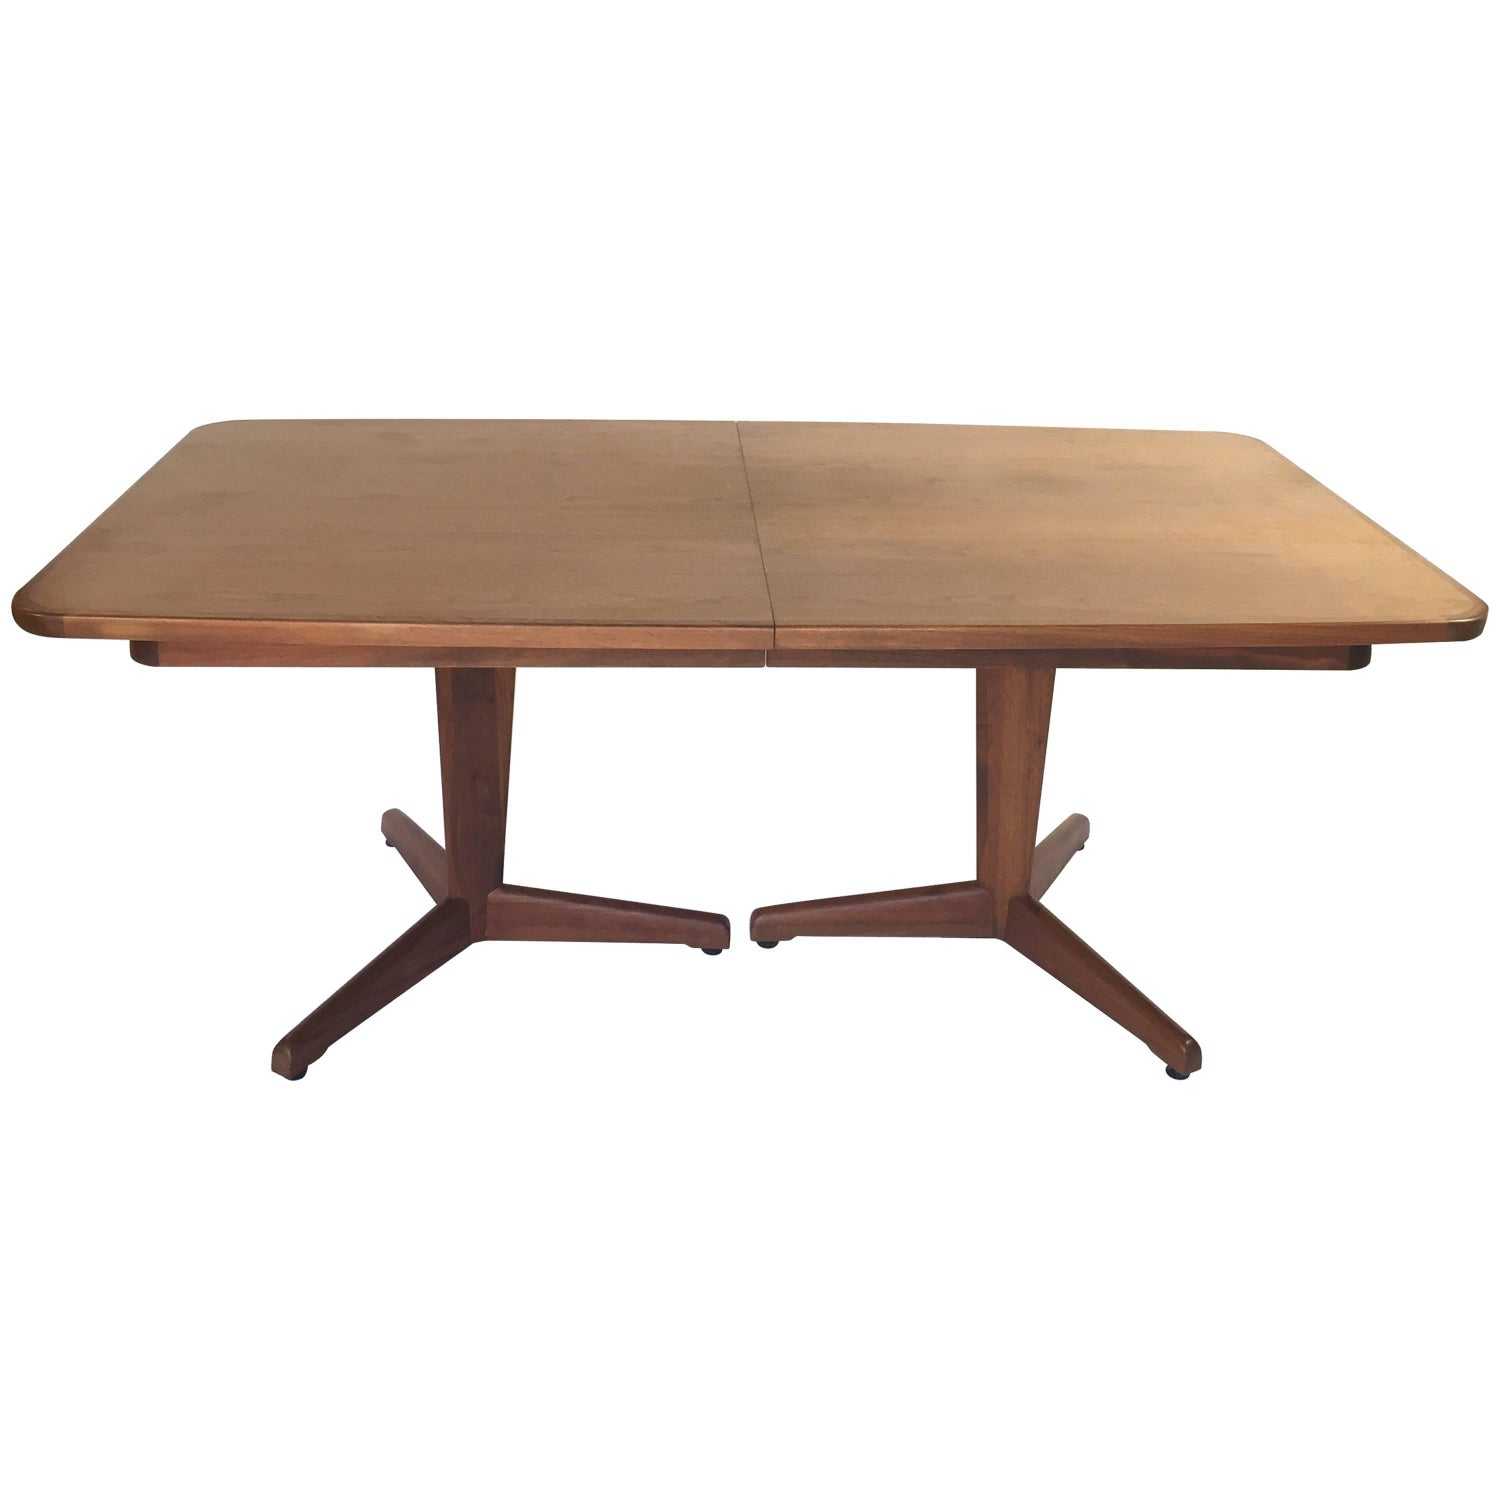 John Keal for Brown Saltman Dining Table with Two Leaves at 1stdibs